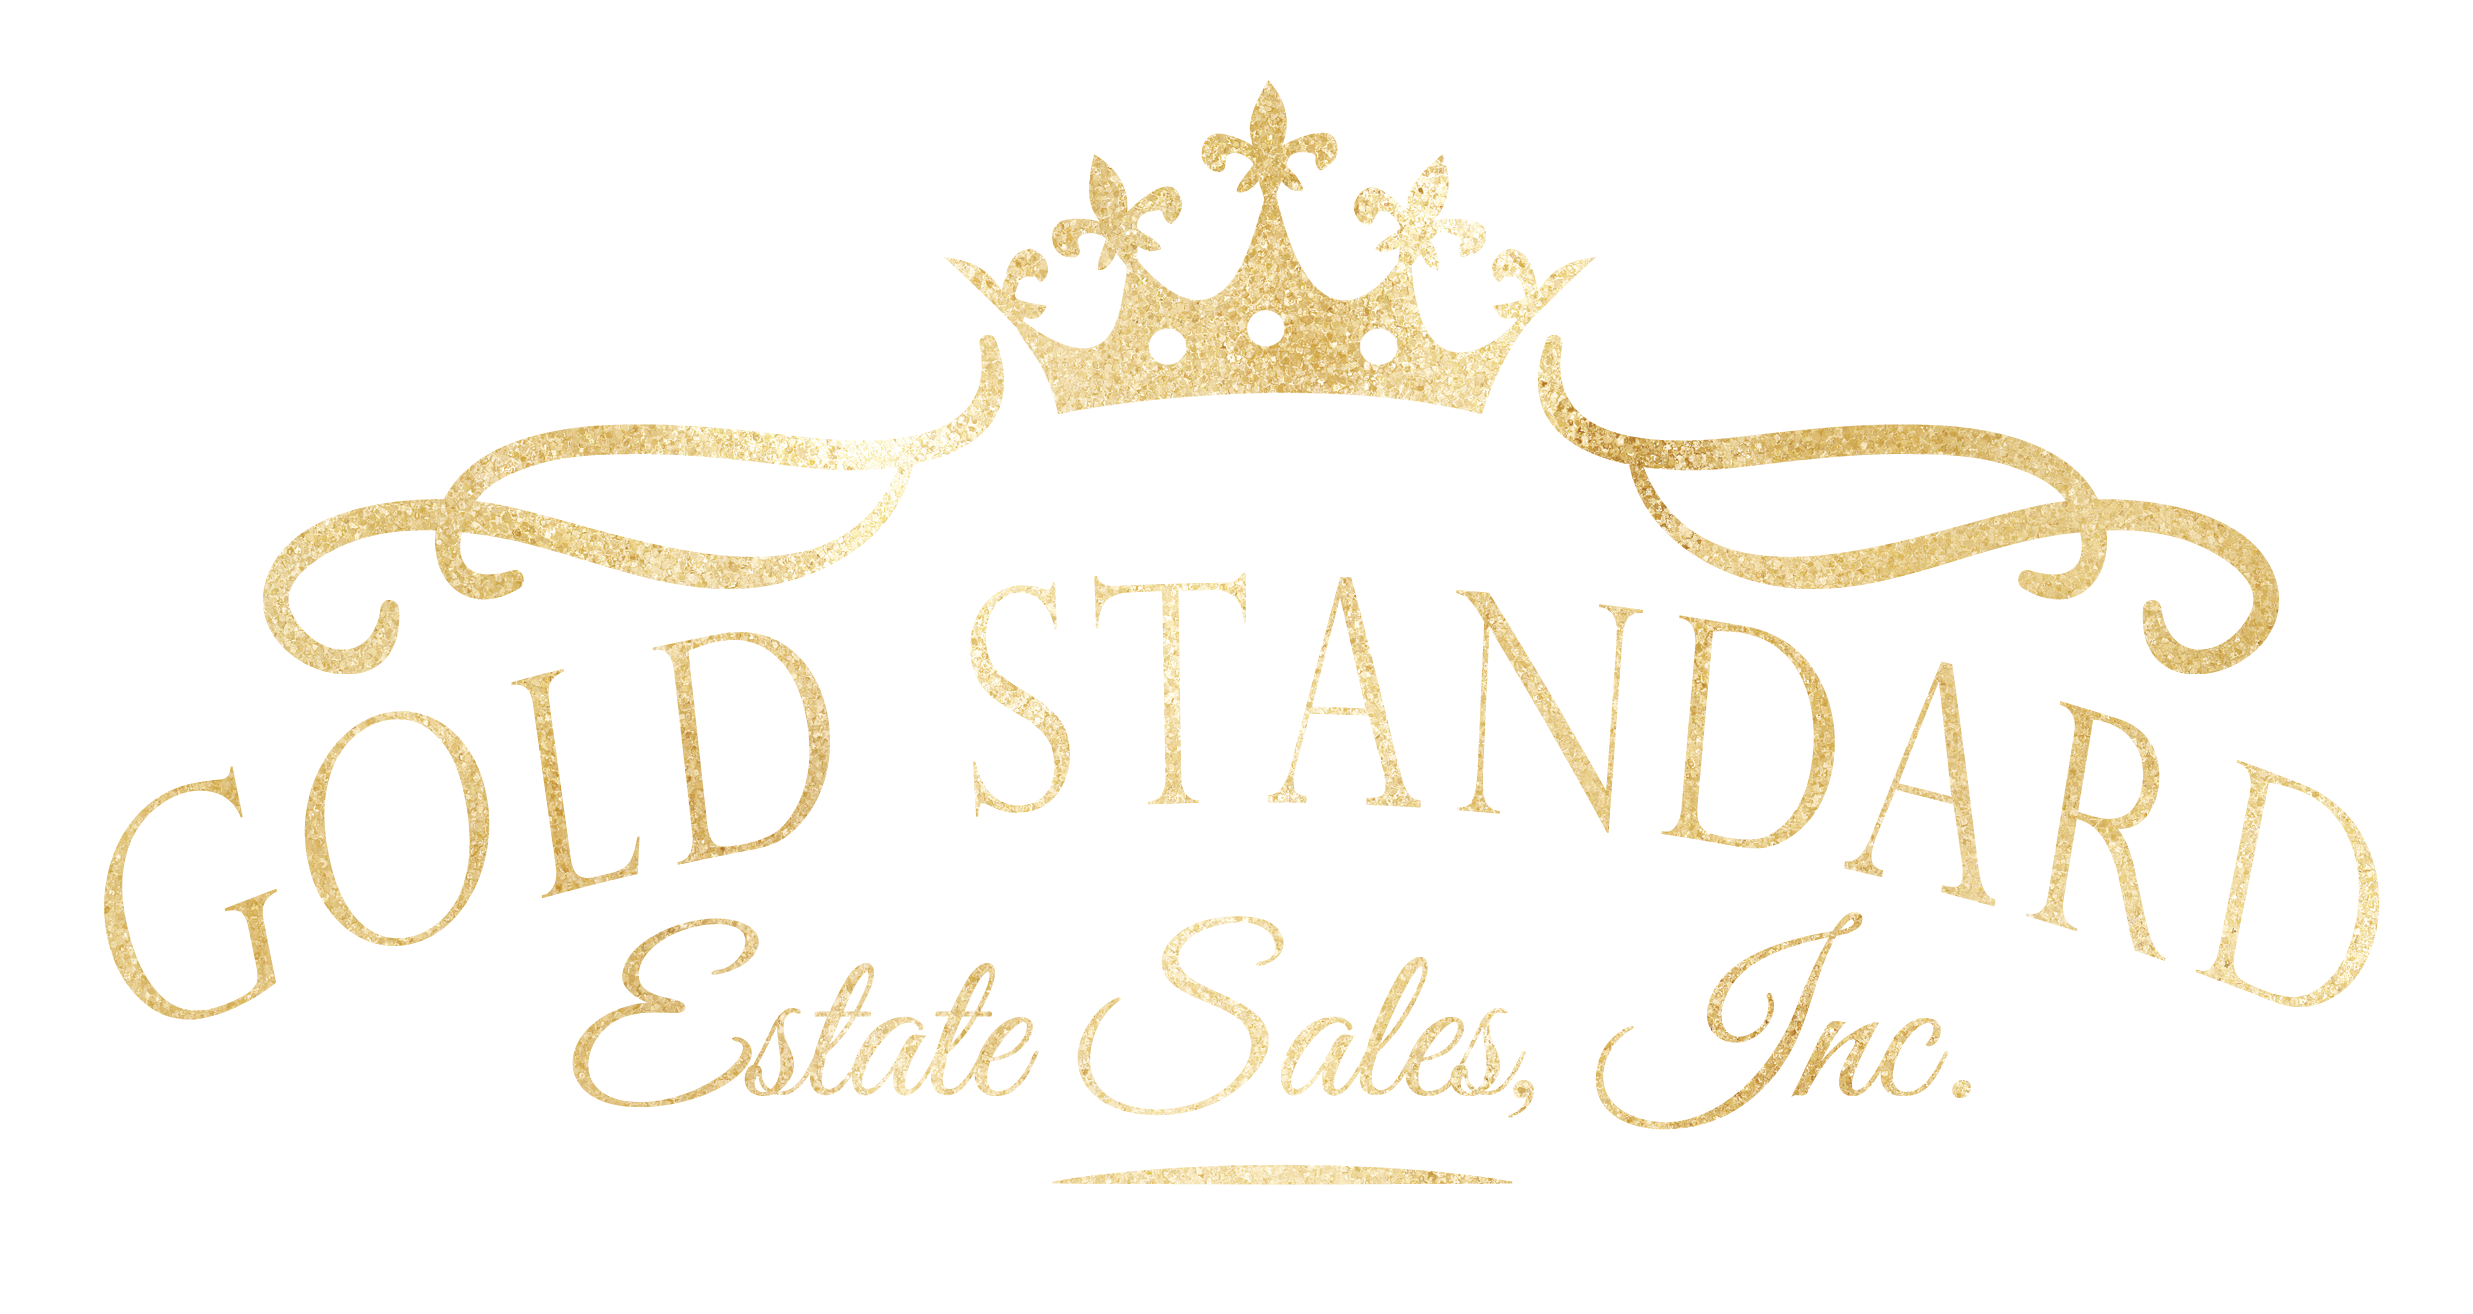 Gold Standard Estate Sales